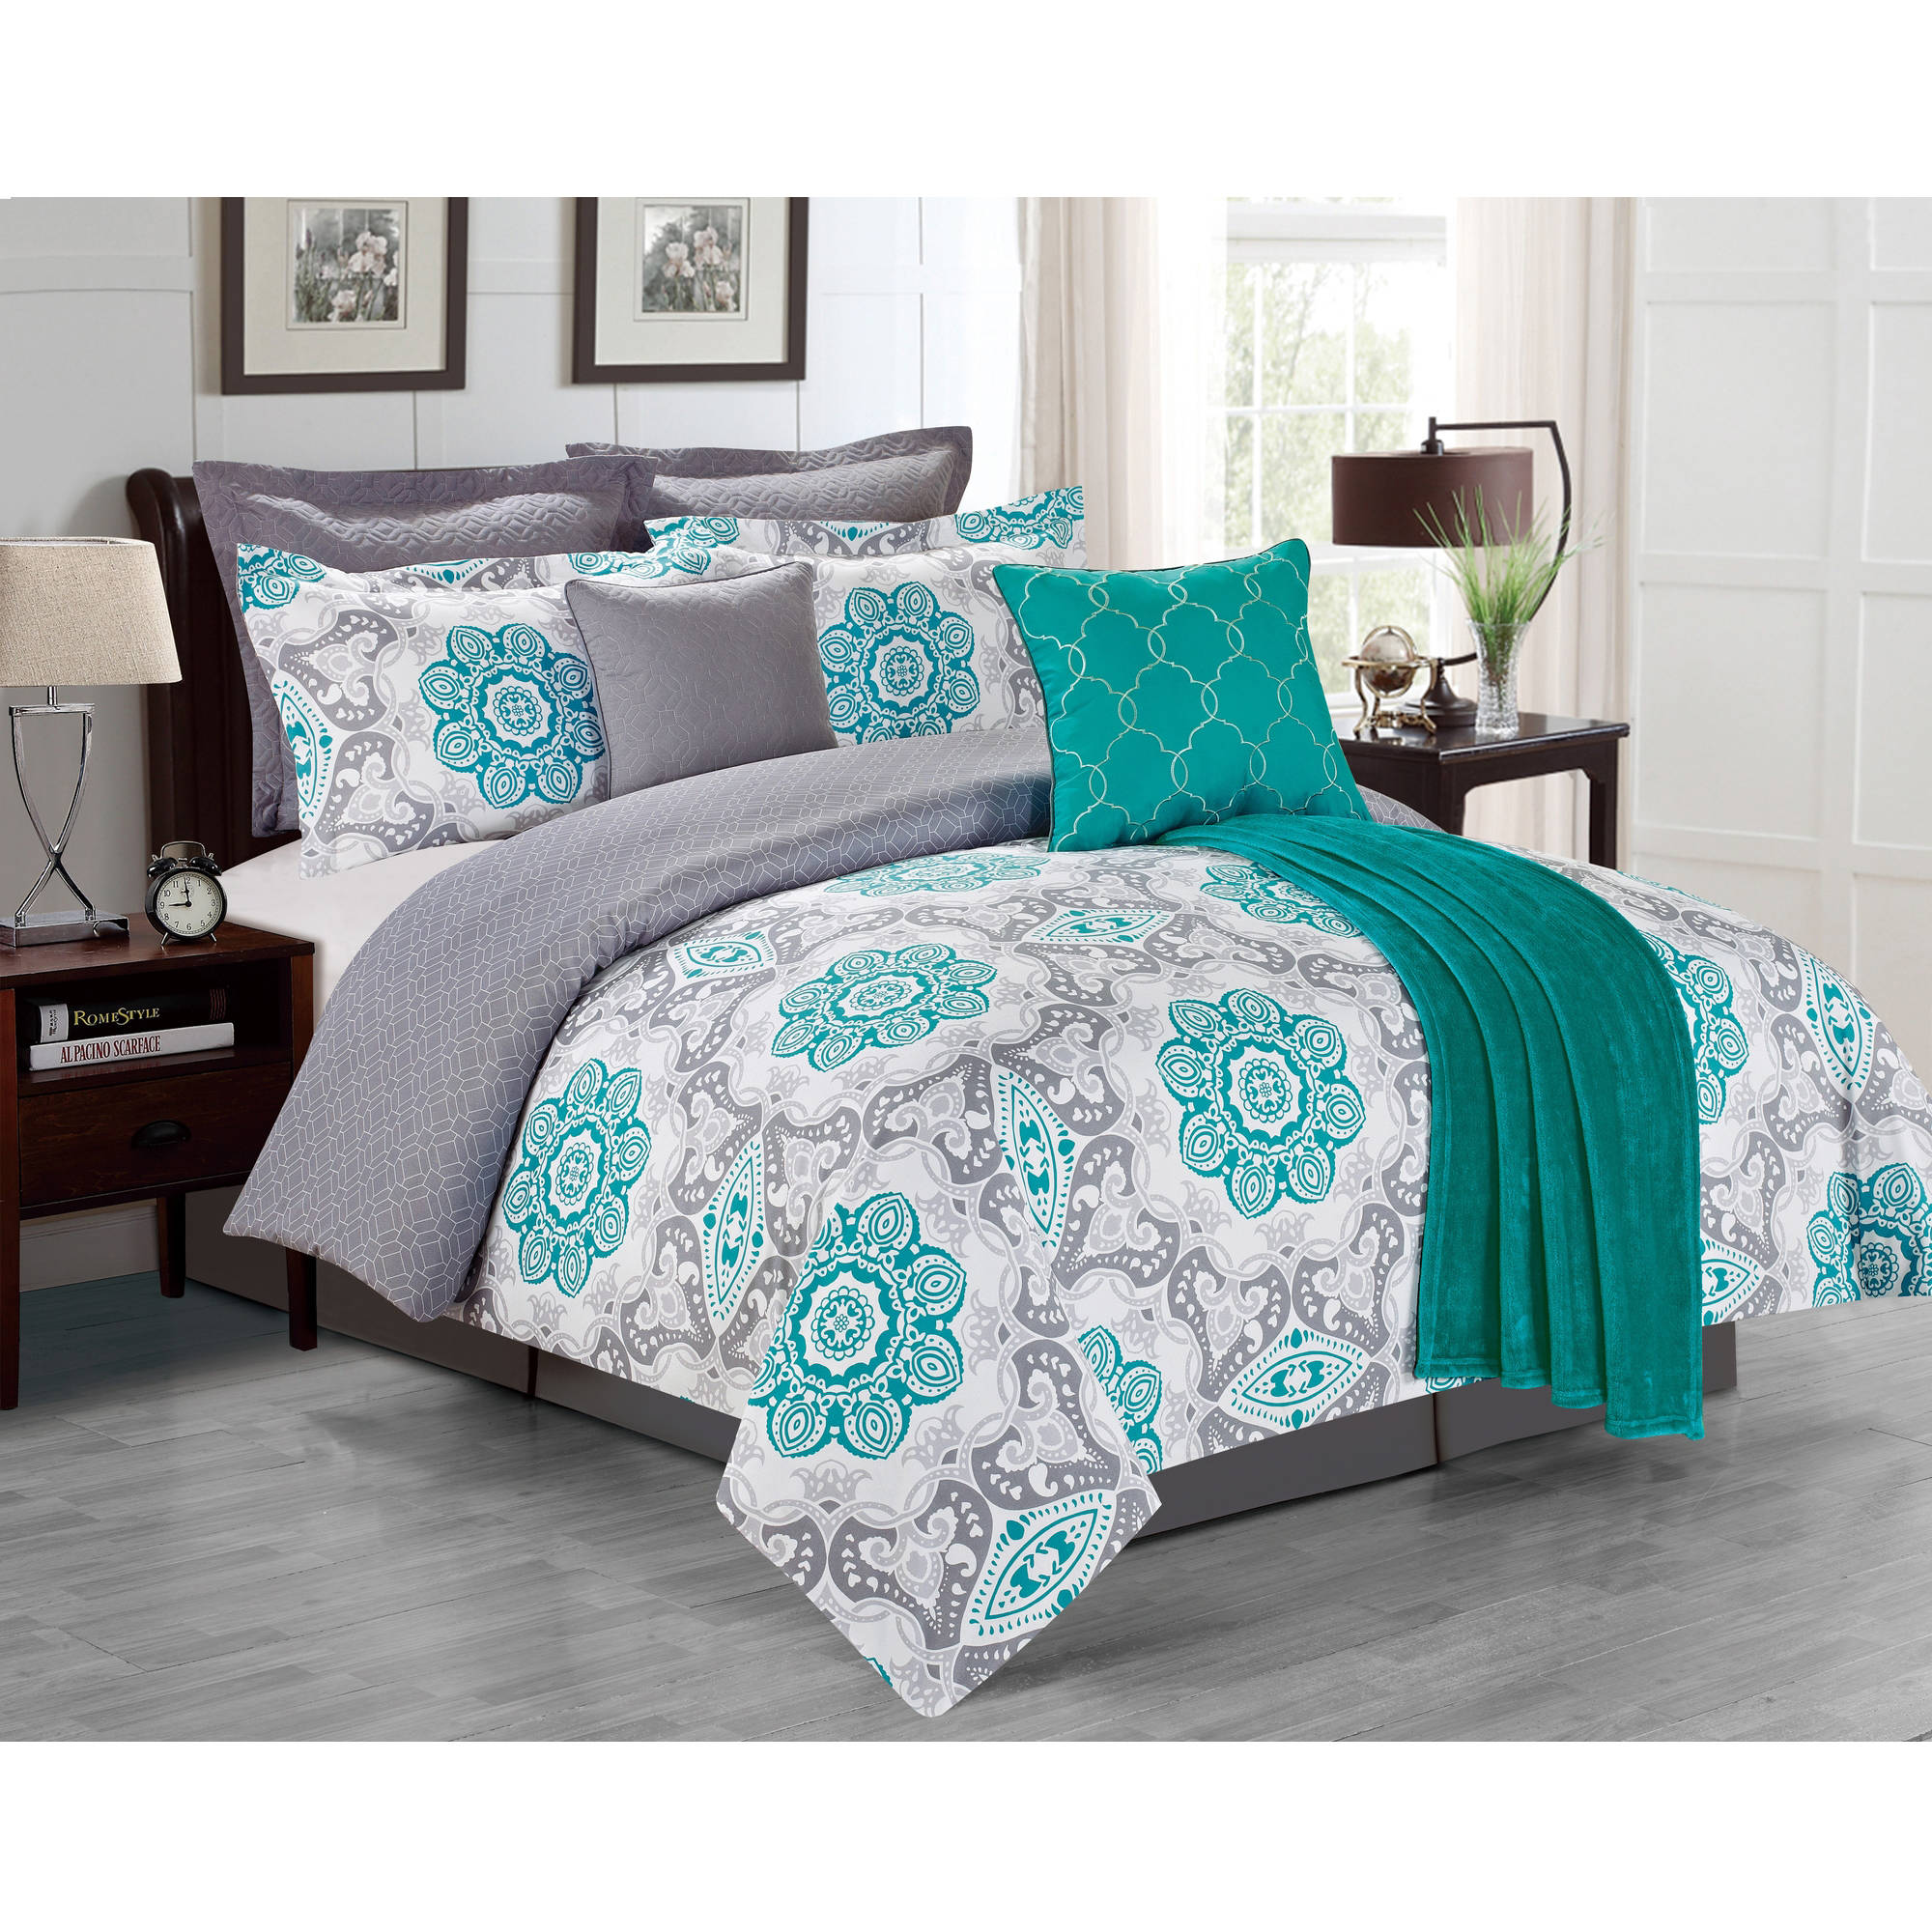 free shipping santorini bedding teal bath product set zone comforter today mi overstock